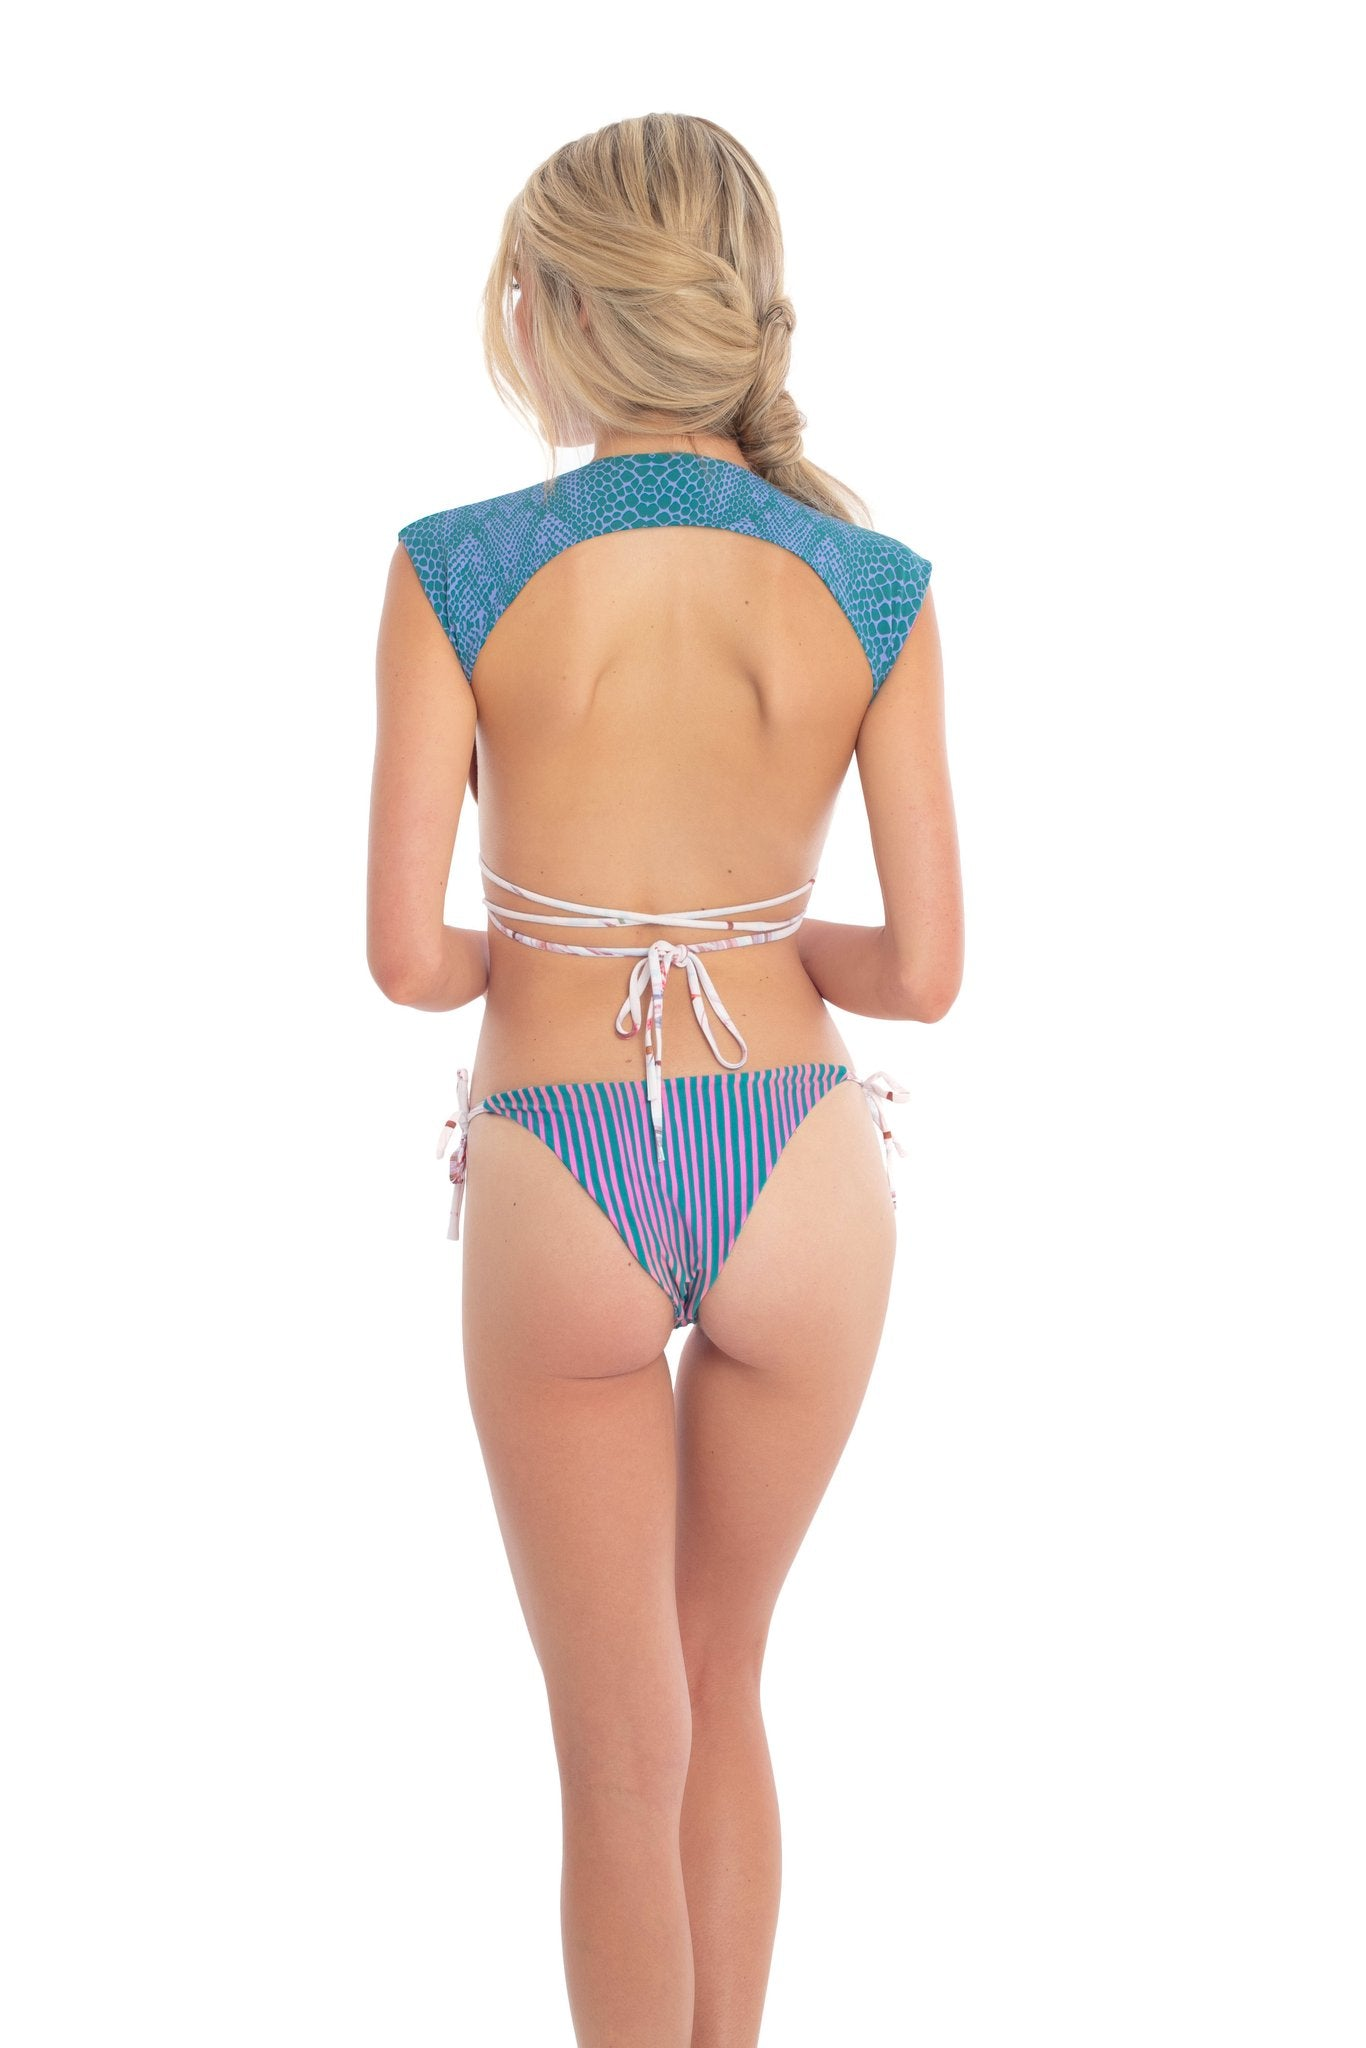 BLONDIE TEMPEST / LABYRINTH REVERSIBLE BOTTOM